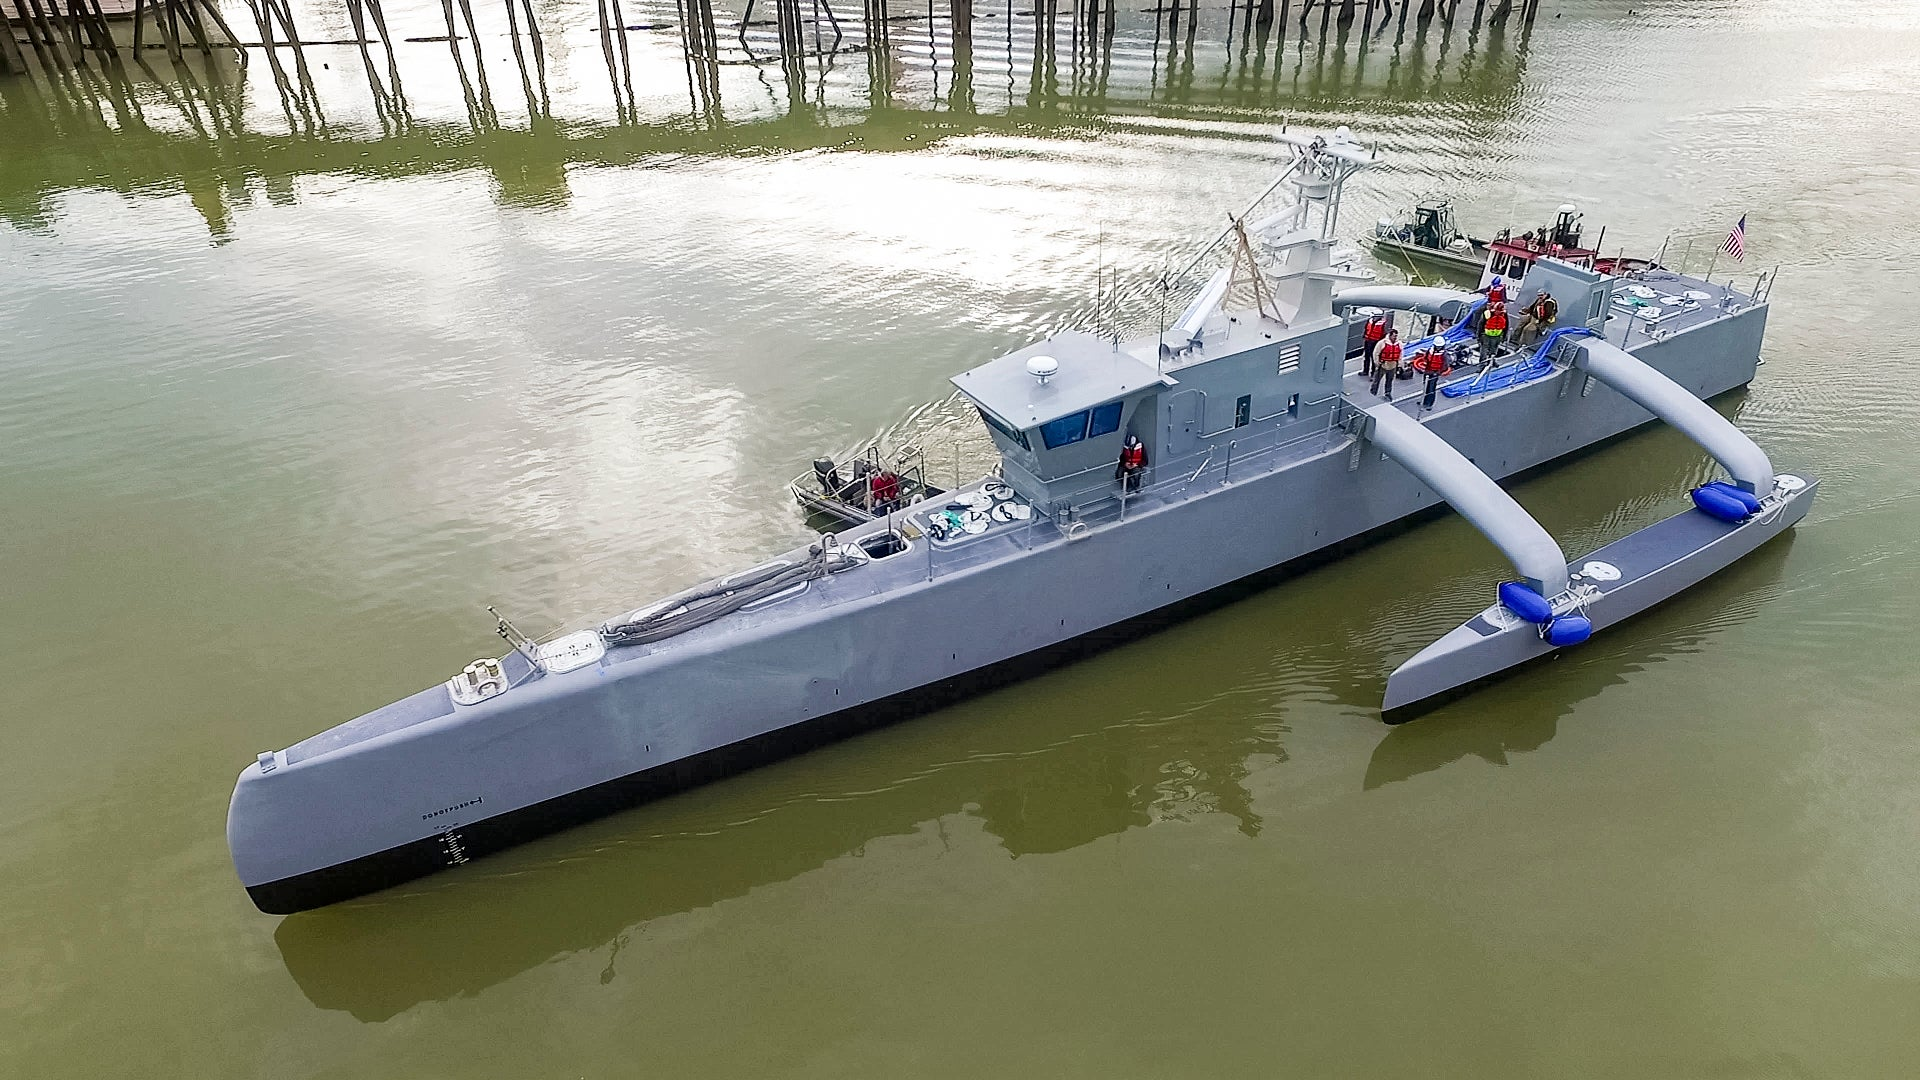 DARPA's New Robot Is Ready to Go Submarine Hunting